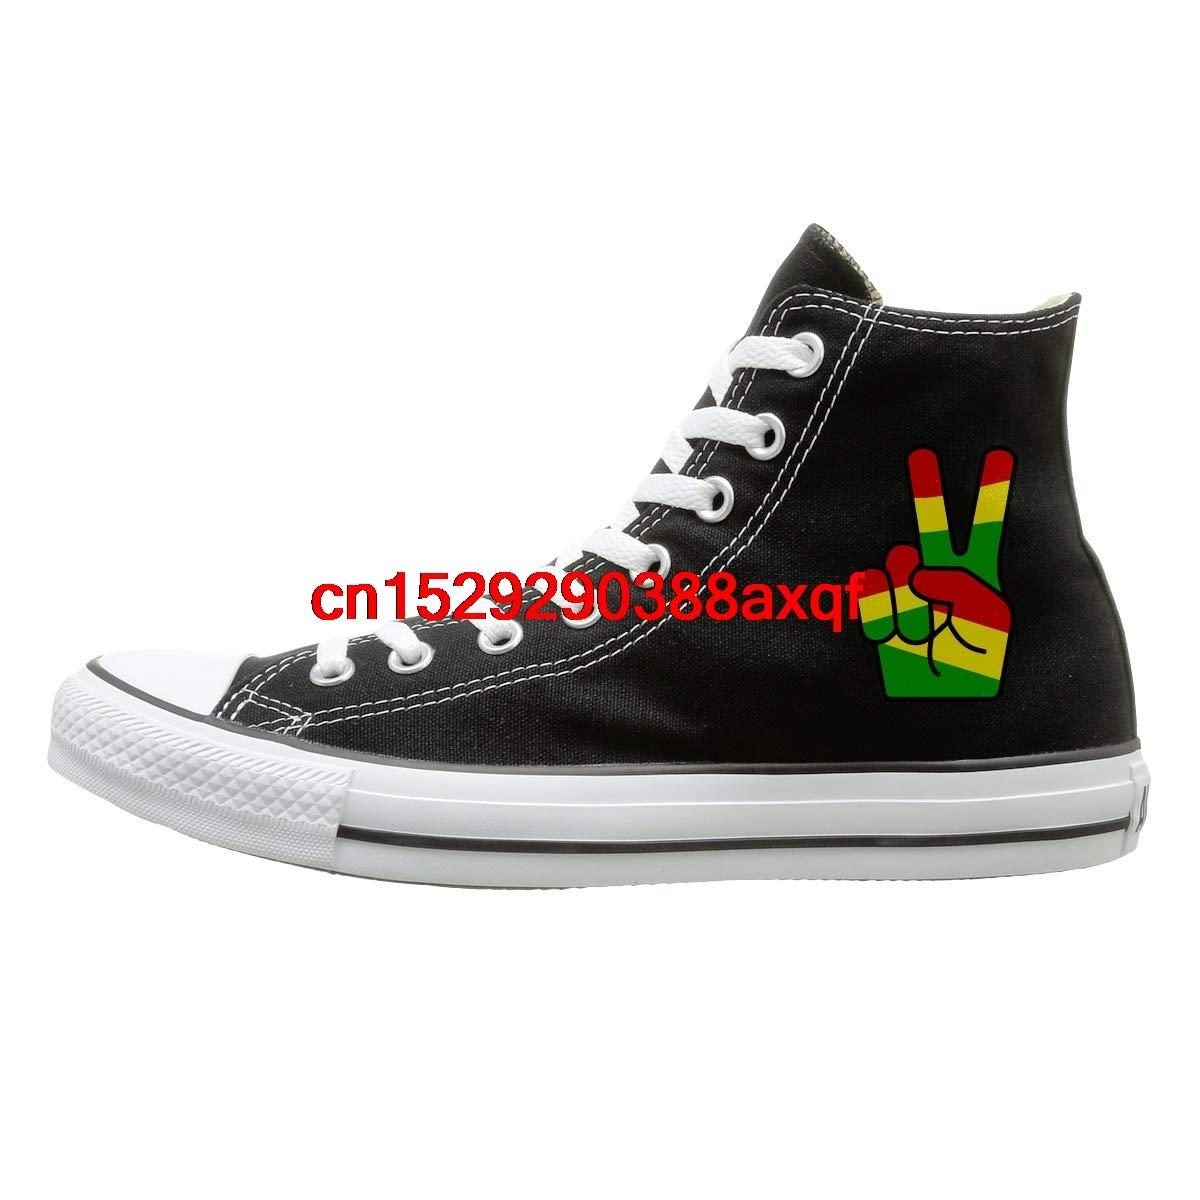 Mens Rasta Shoes Fashion Trainers Lace Up Shoes